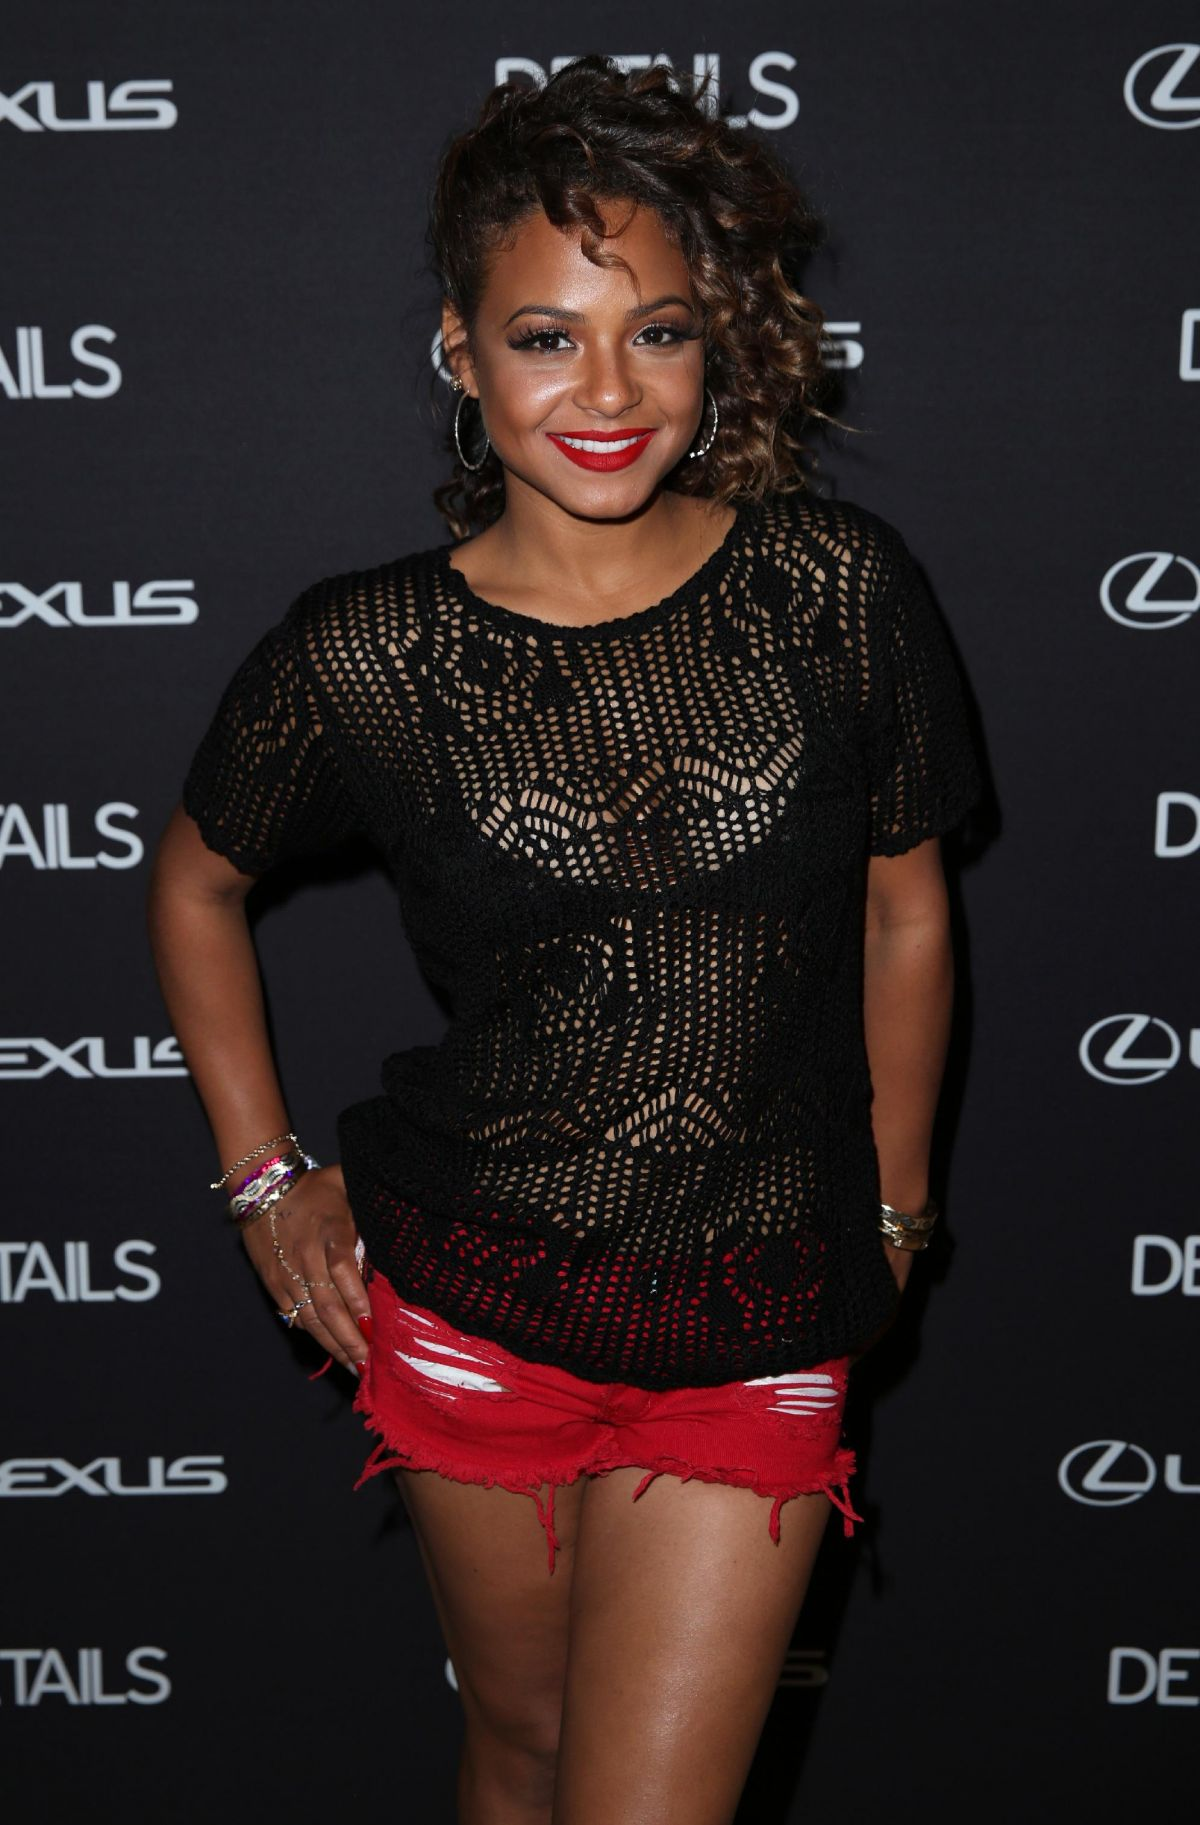 CHRISTINA MILIAN at Details at Midnight Party in Bermuda Dunes